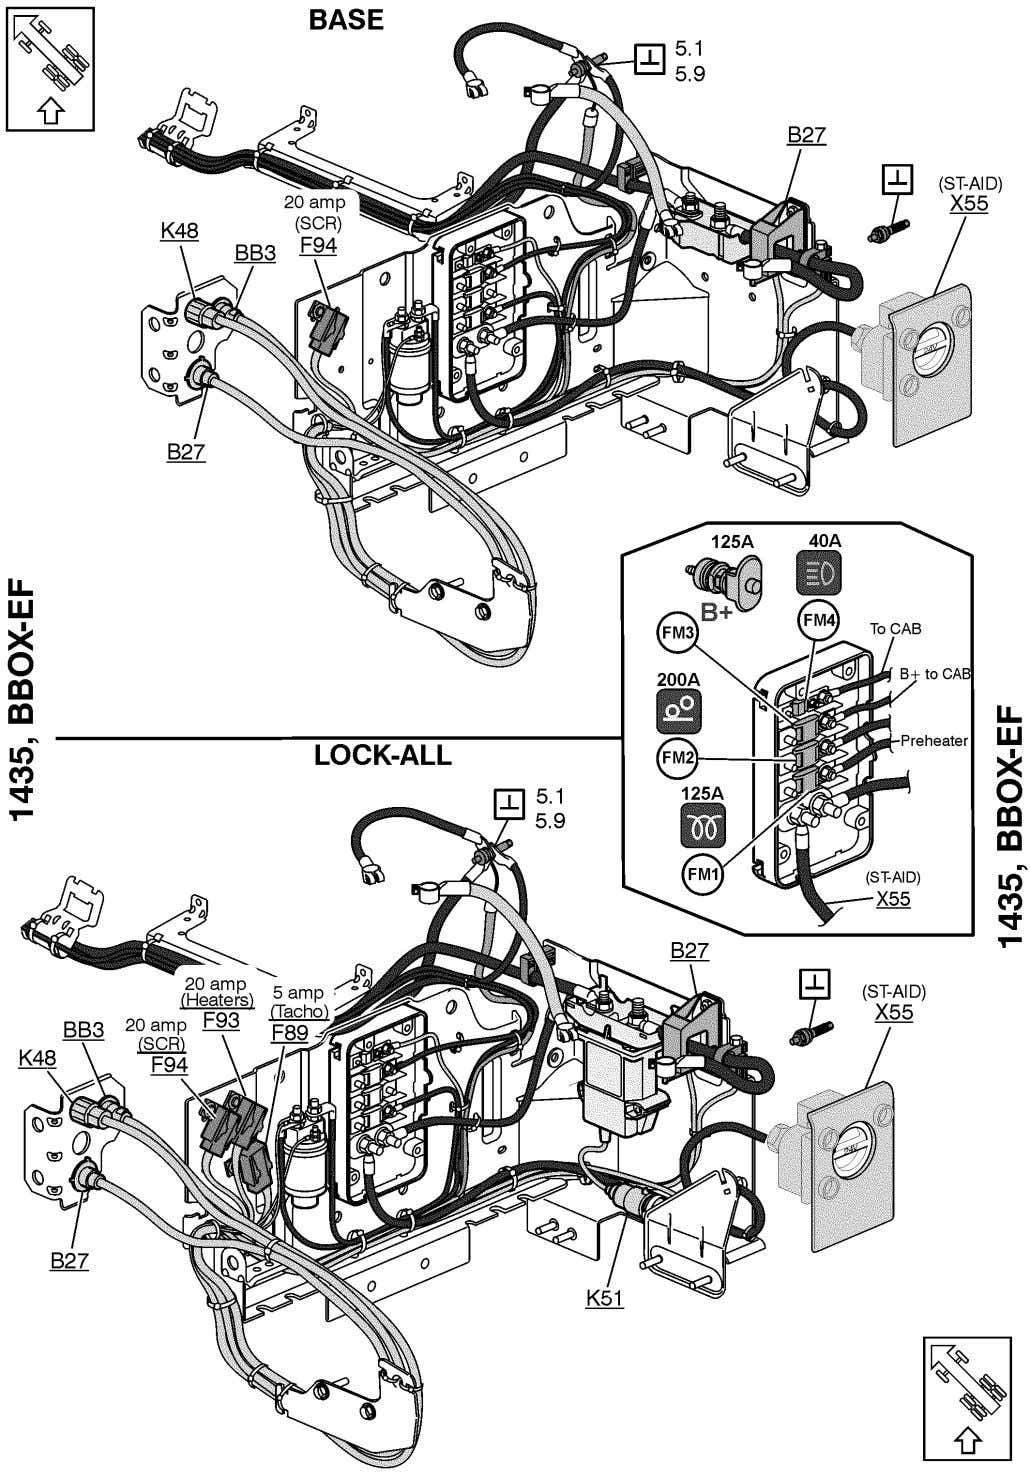 T3021586 Wiring diagram Page 203 (298)